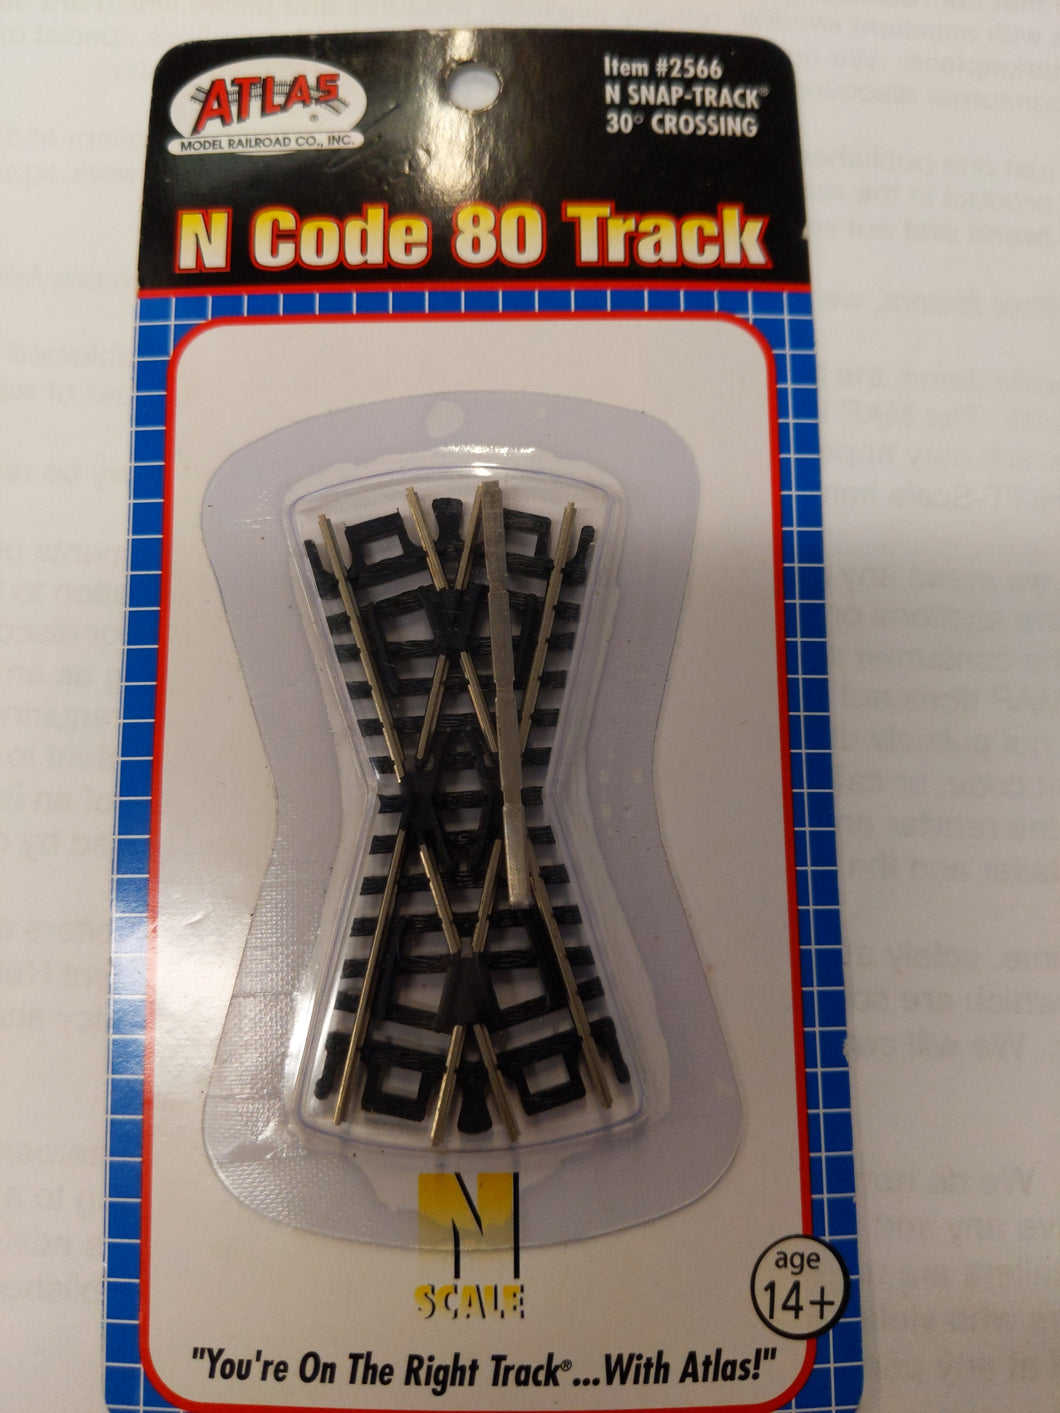 Atlas 2566 N Code 80 Snap-Track 30 degree Crossing